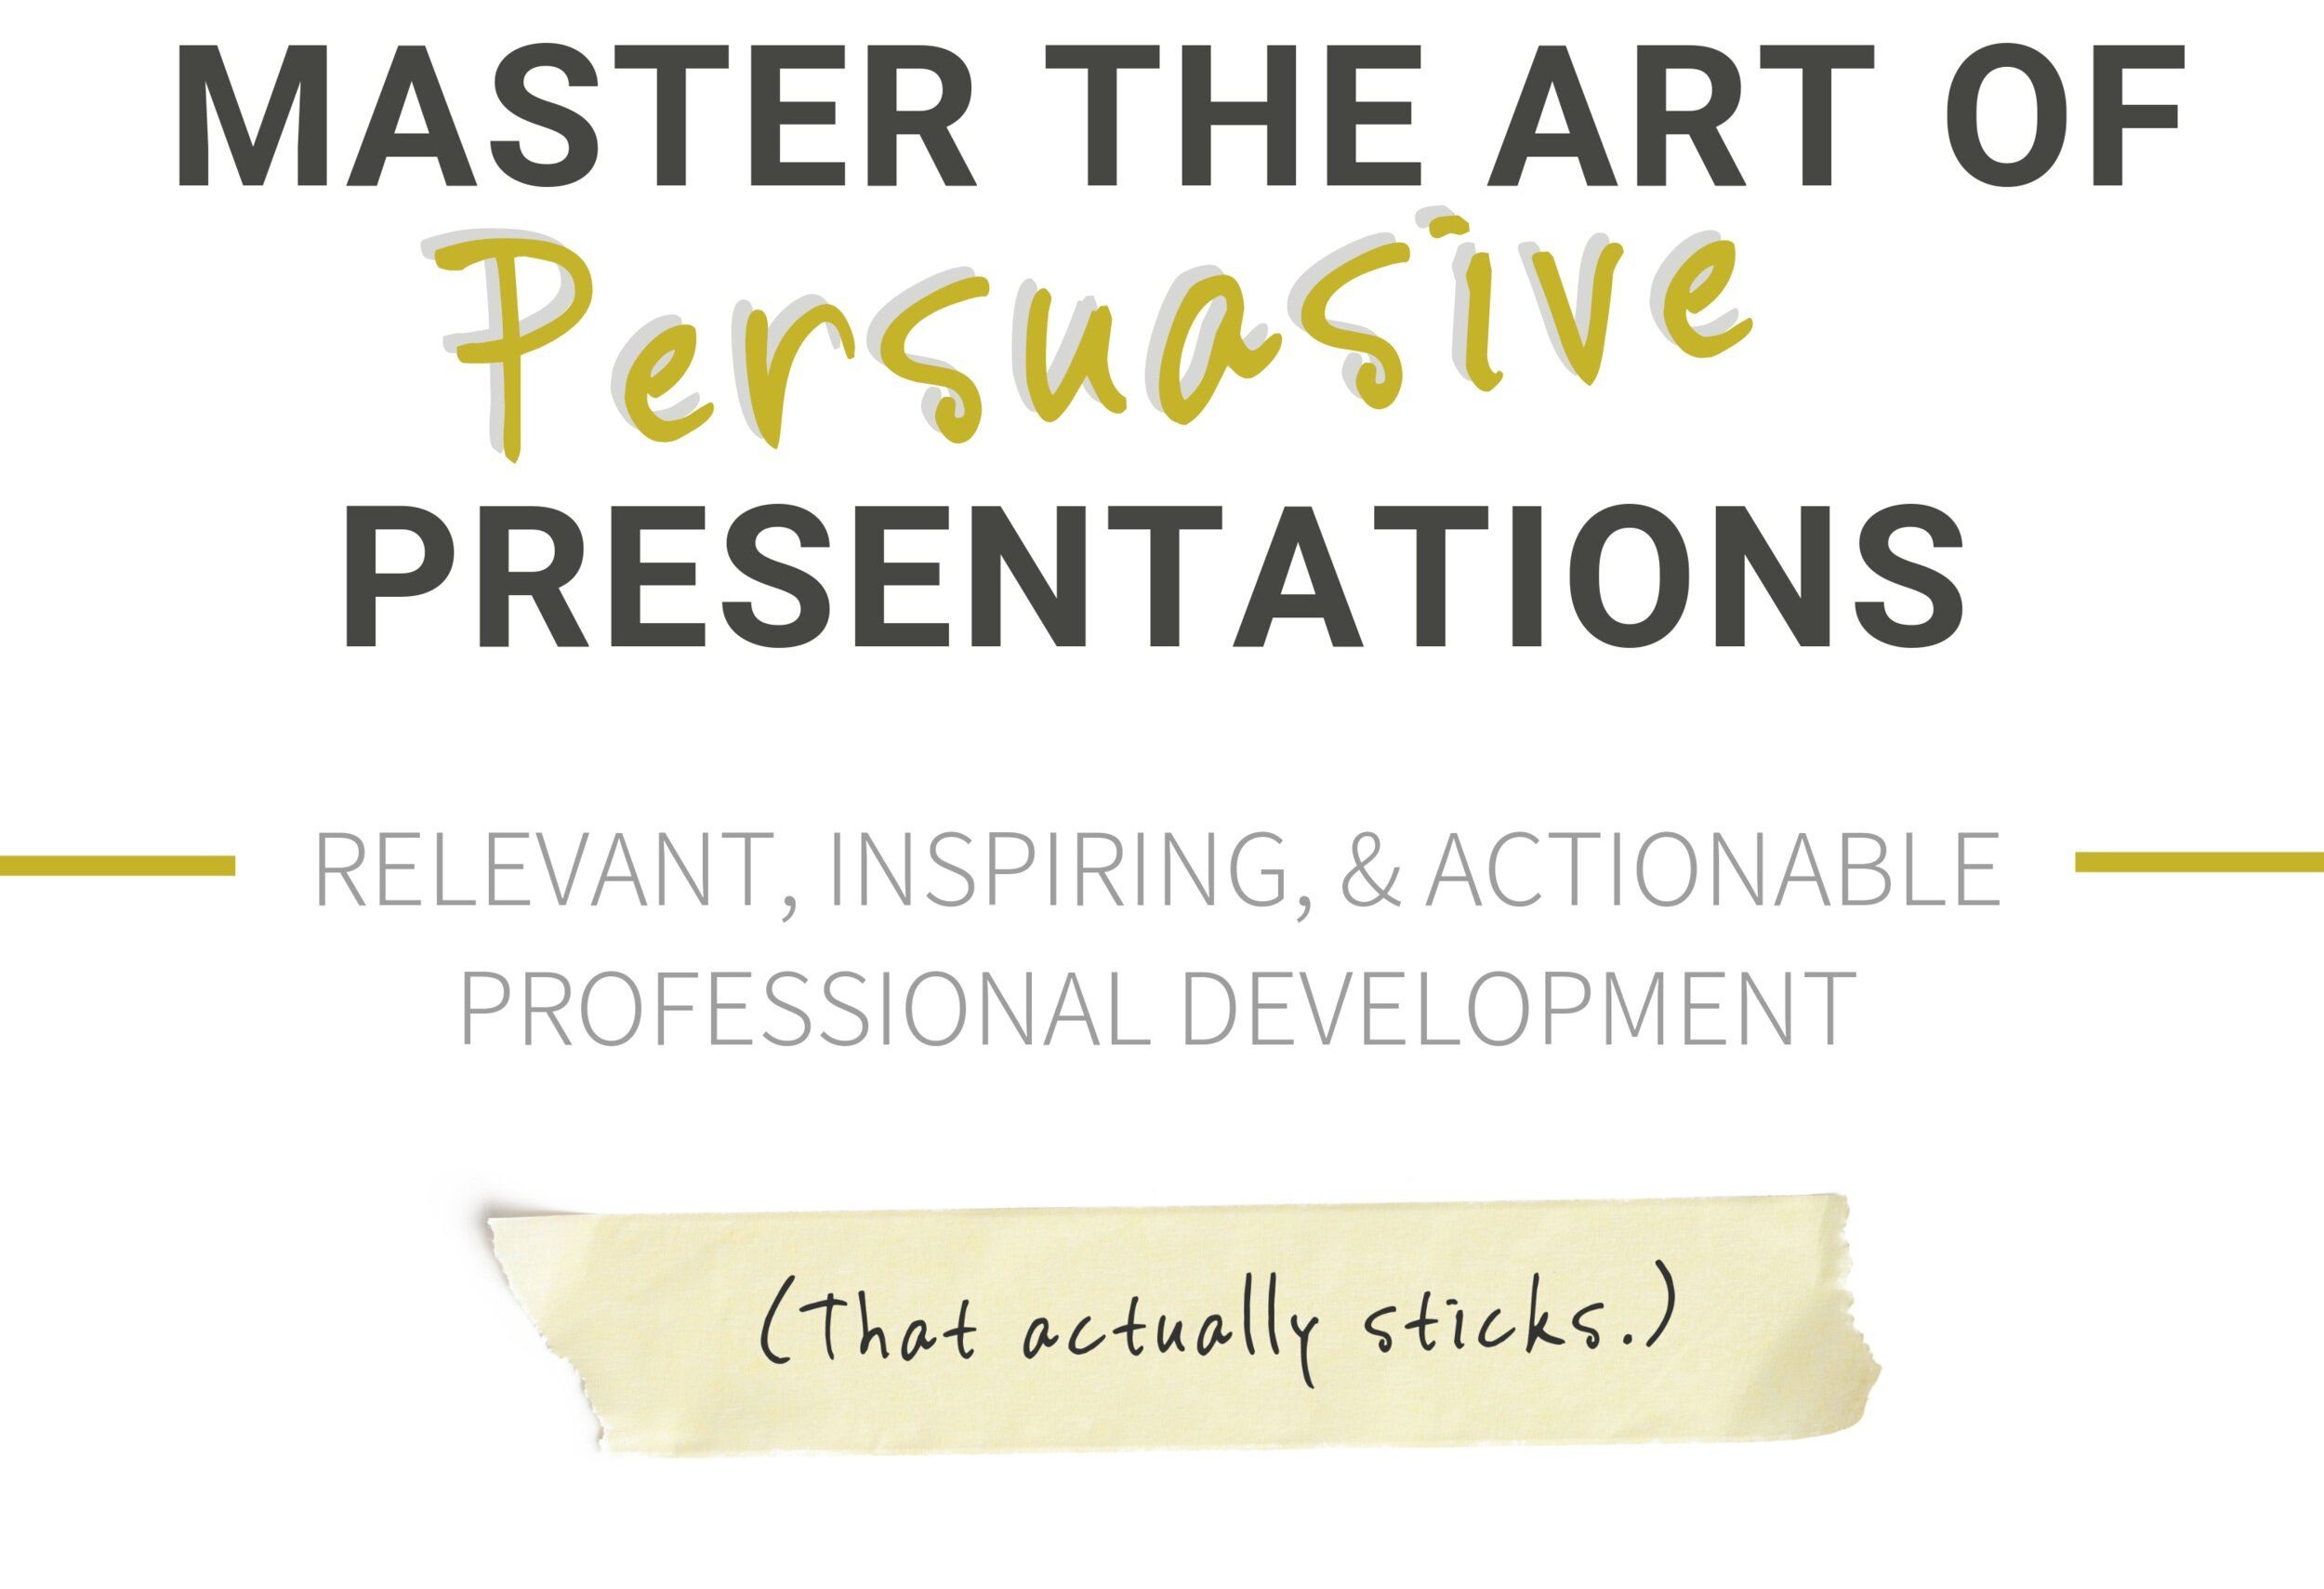 Master the Art of Persuasive Presentations.png